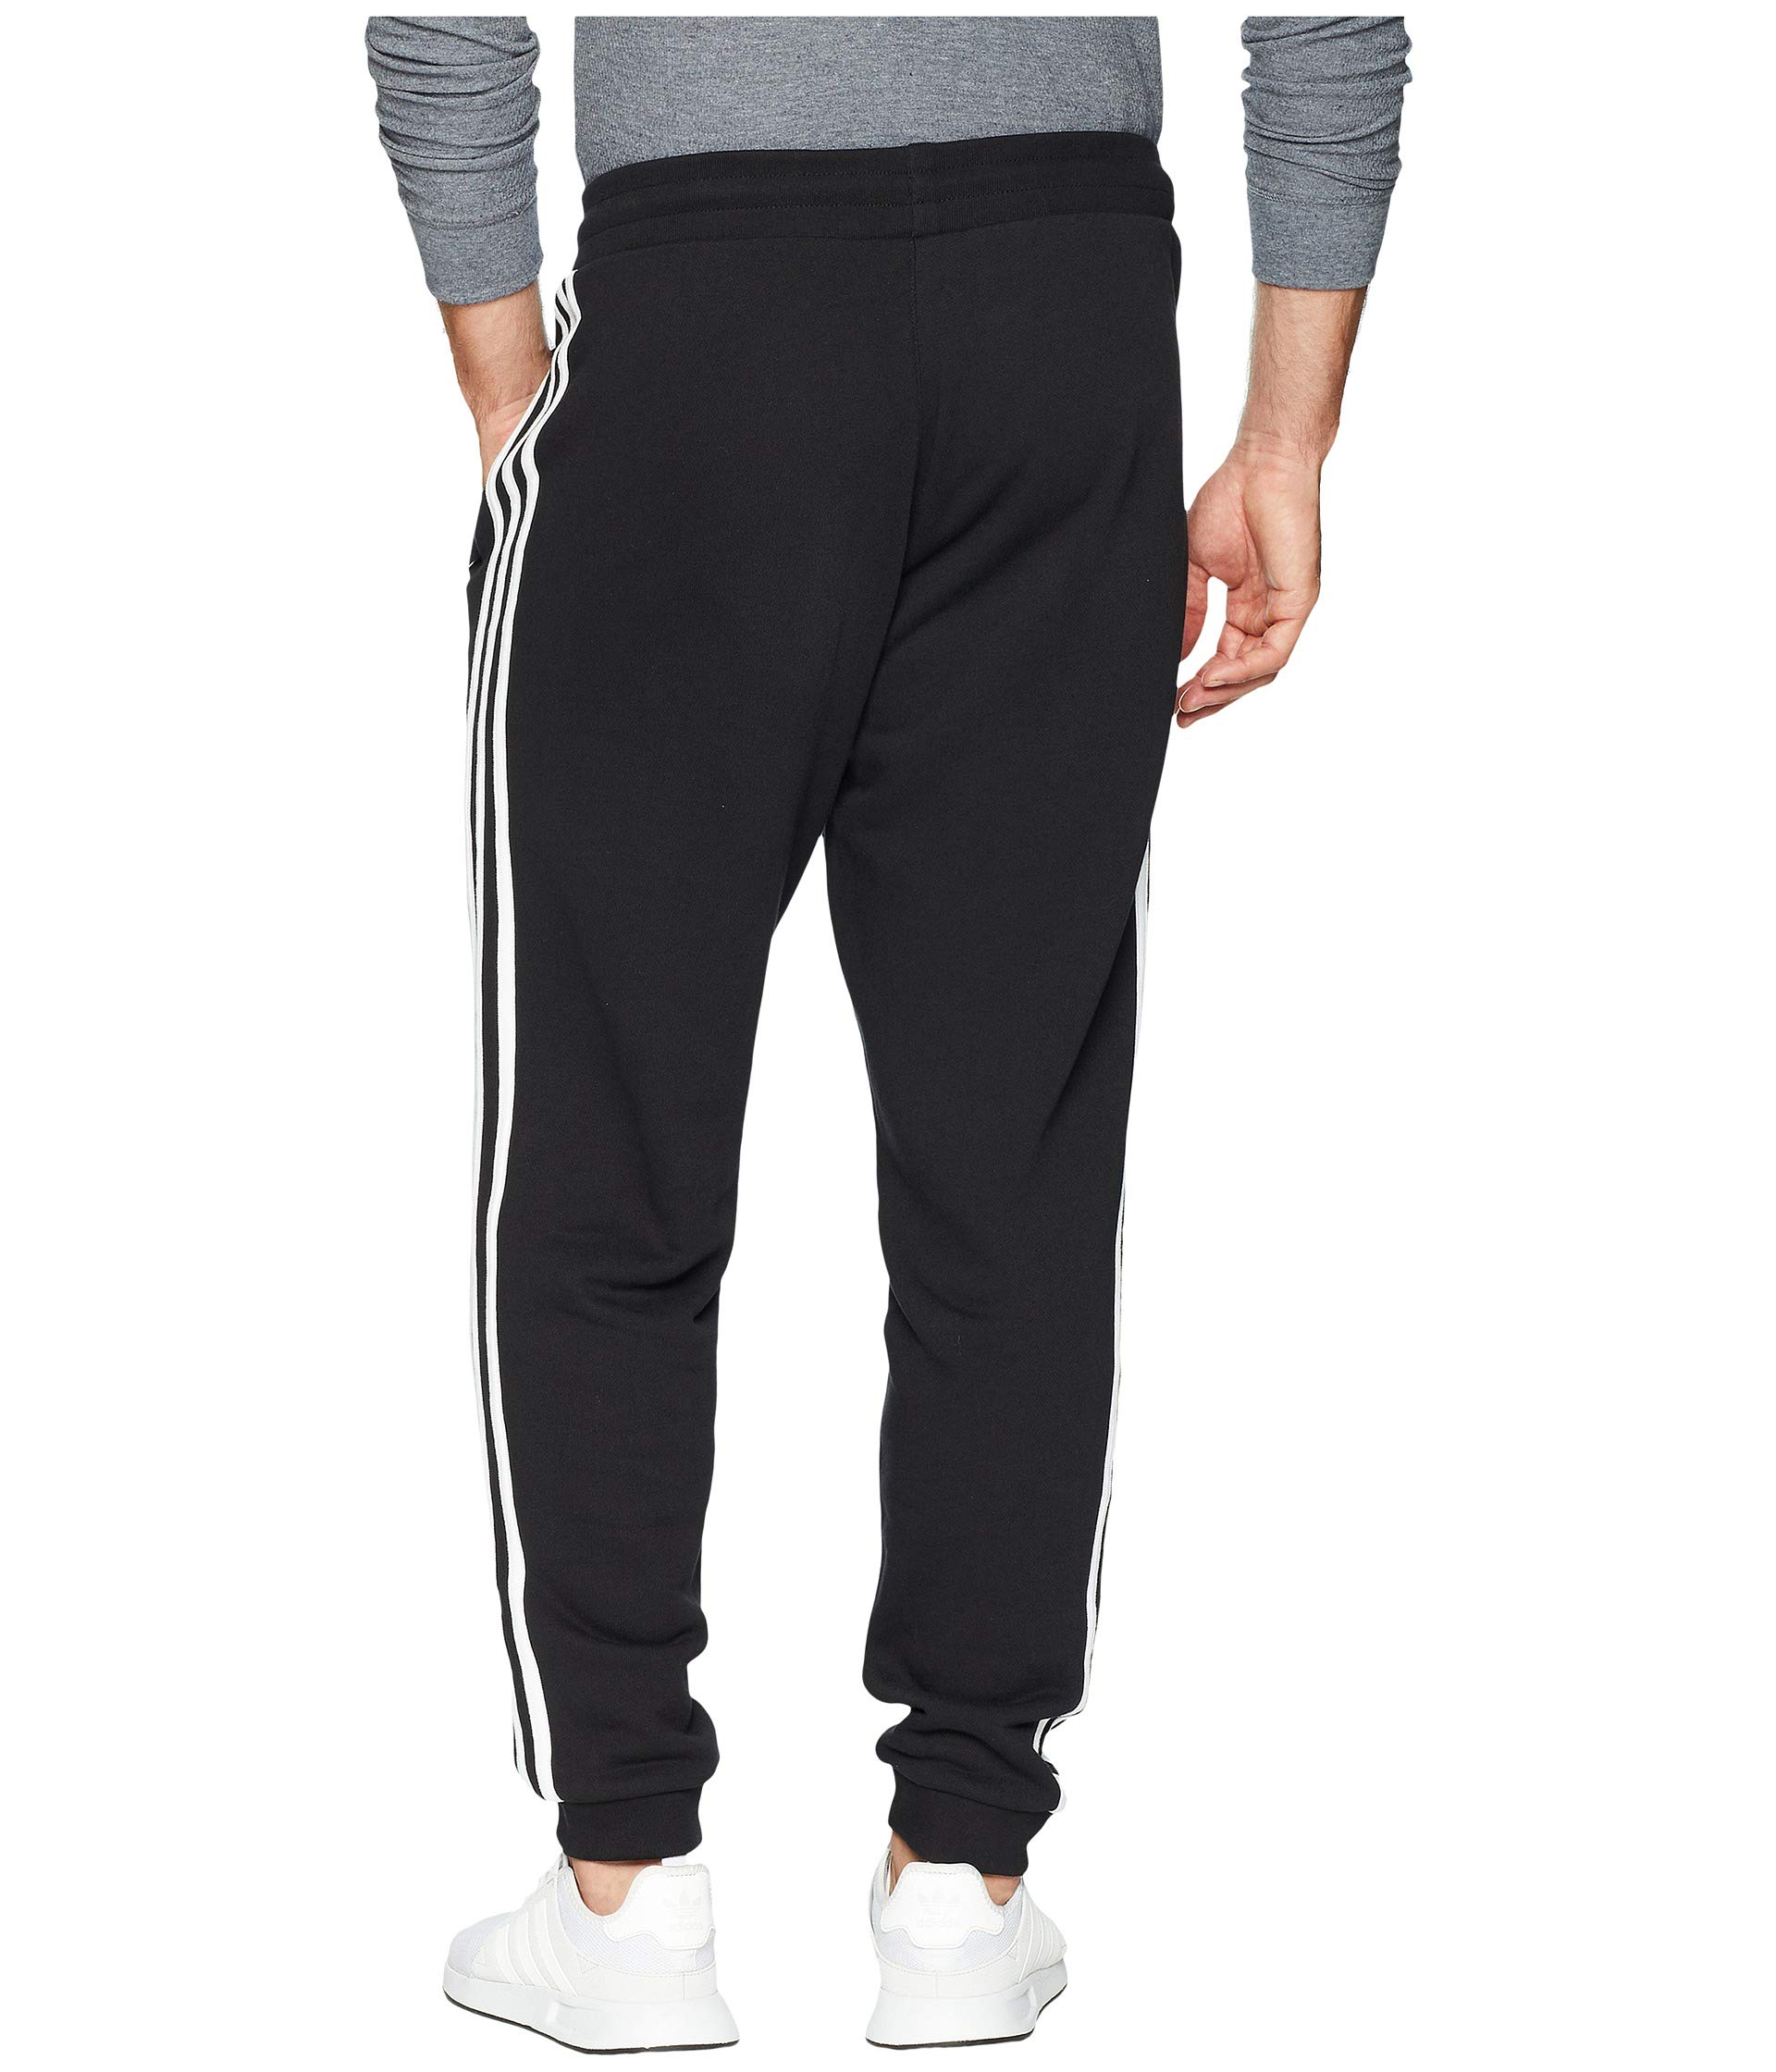 Originals Pants Black Adidas 3 stripes RqwdOFO